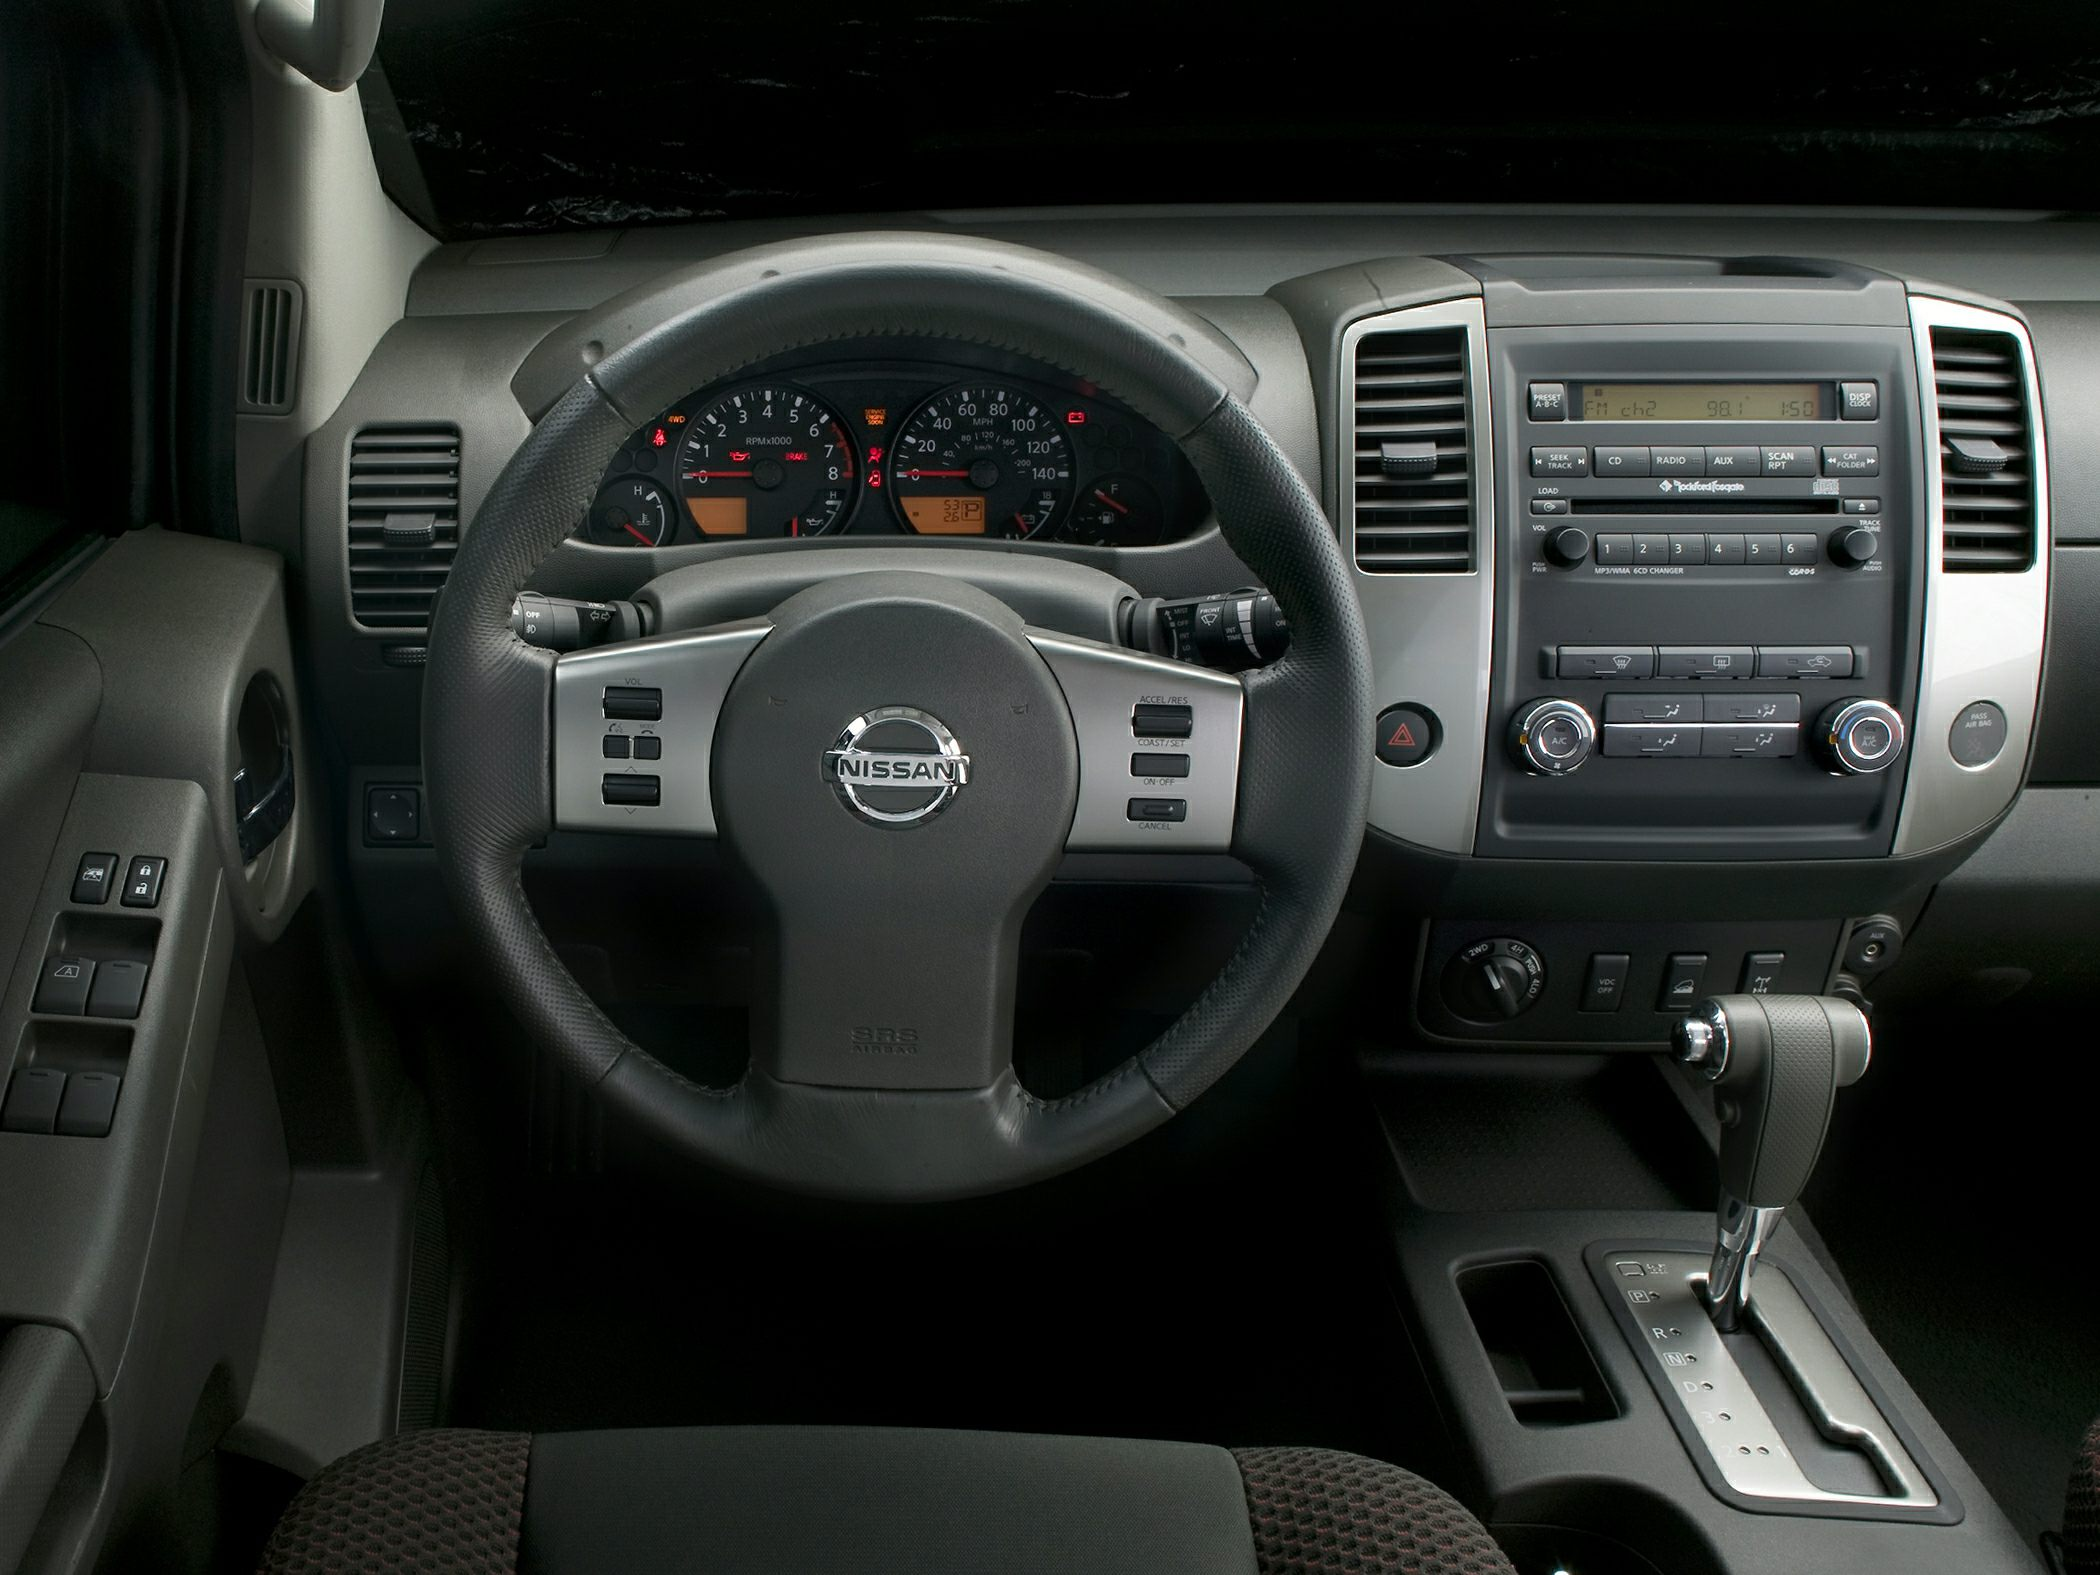 2014 nissan xterra information and photos zombiedrive 2014 nissan xterra 17 nissan xterra 17 vanachro Choice Image